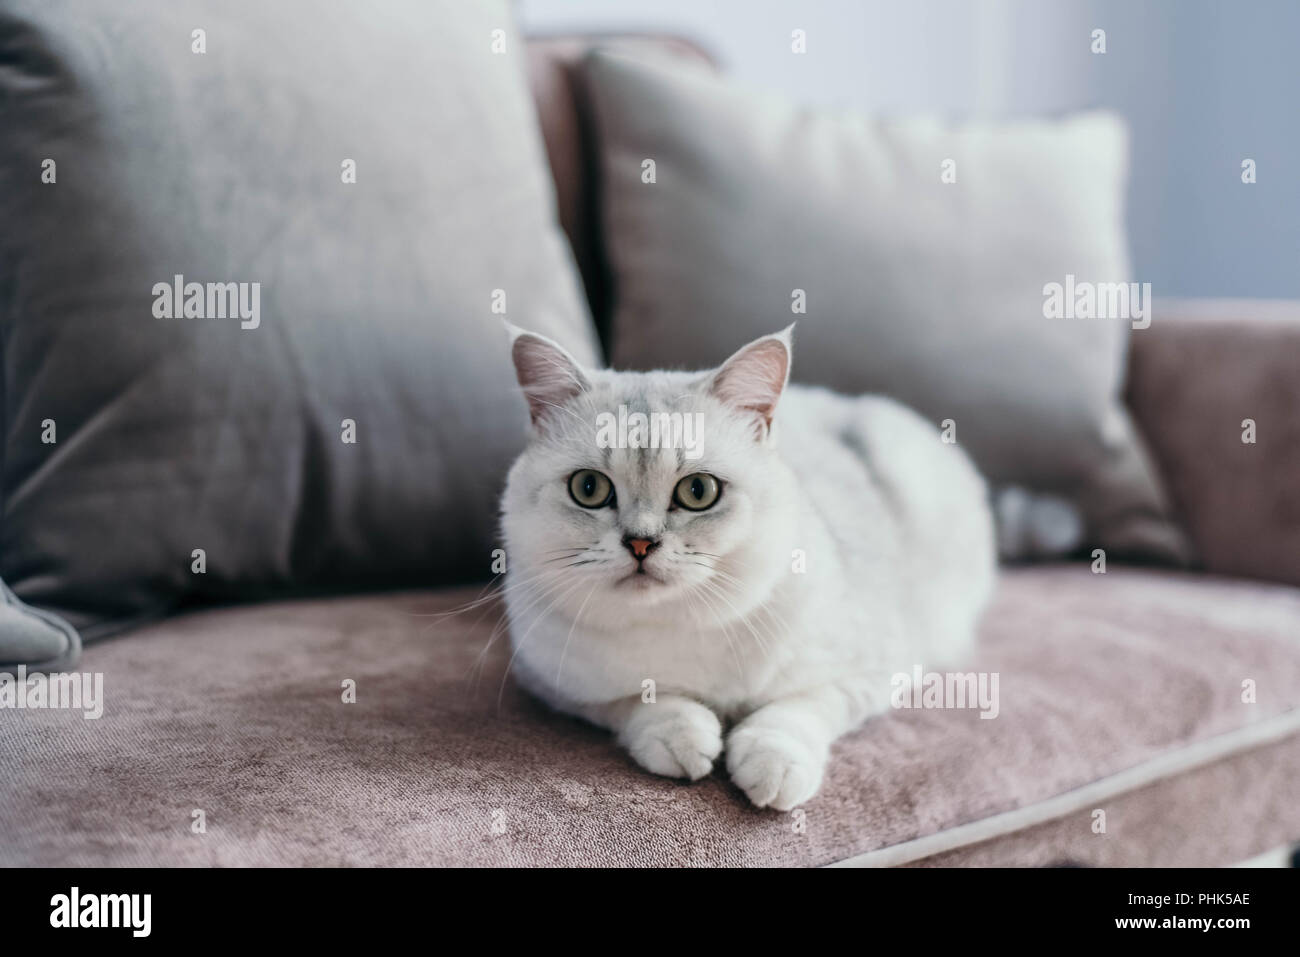 beautiful white grey cat on cauch in classic french home decor near rh alamy com Vintage French Country Decor Vintage French Decor